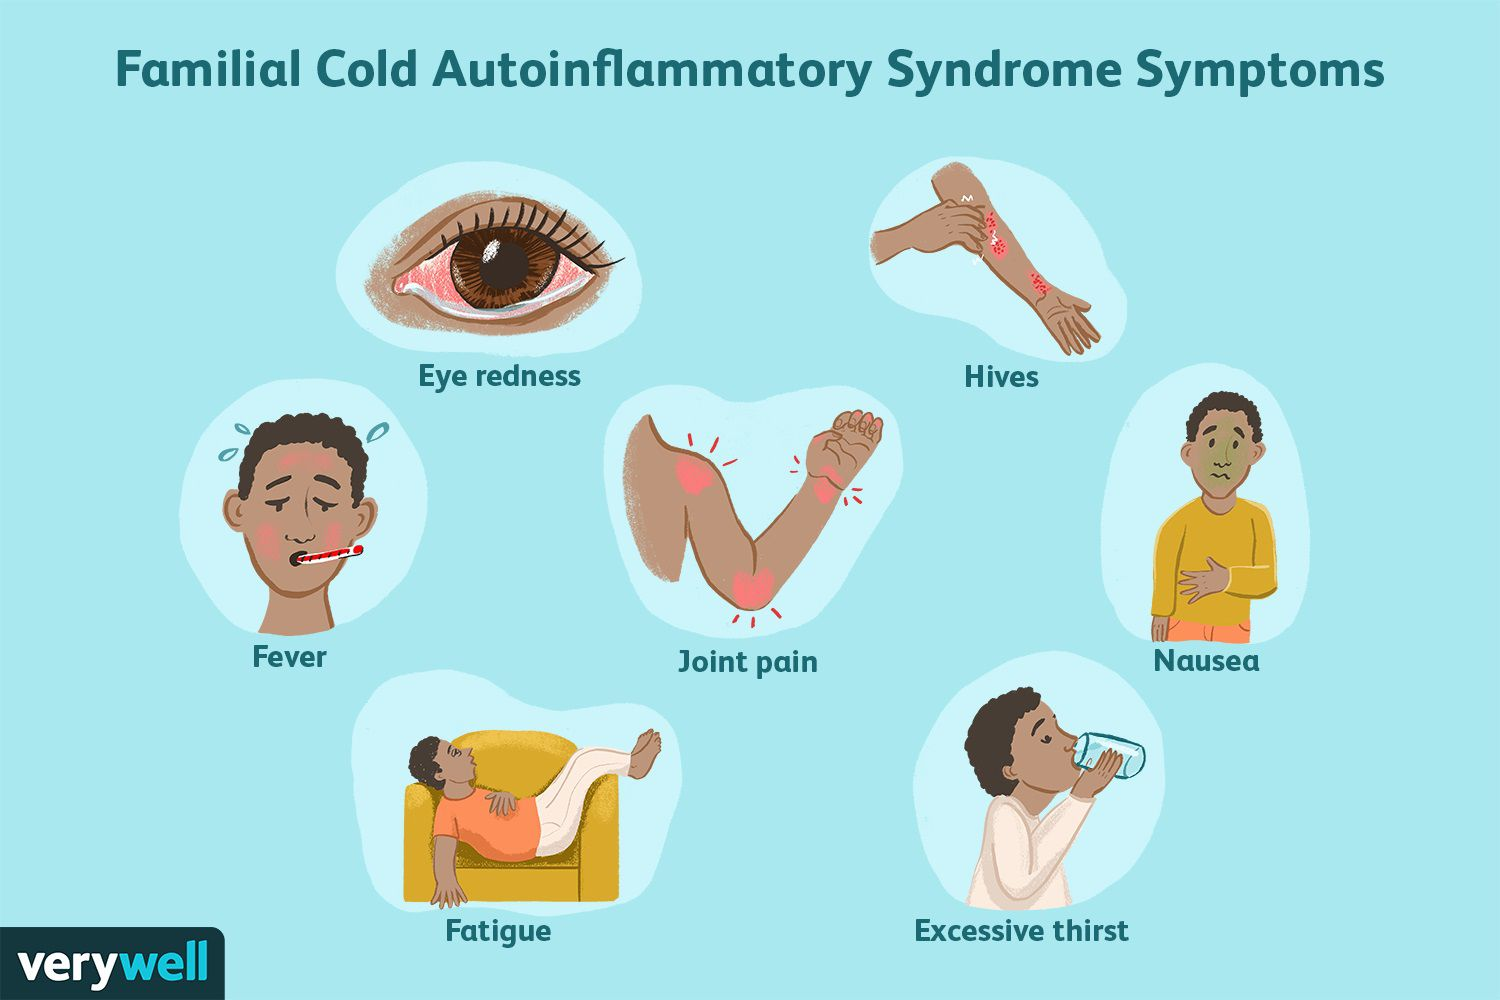 Familial Cold Autoinflammatory Syndrome Symptoms